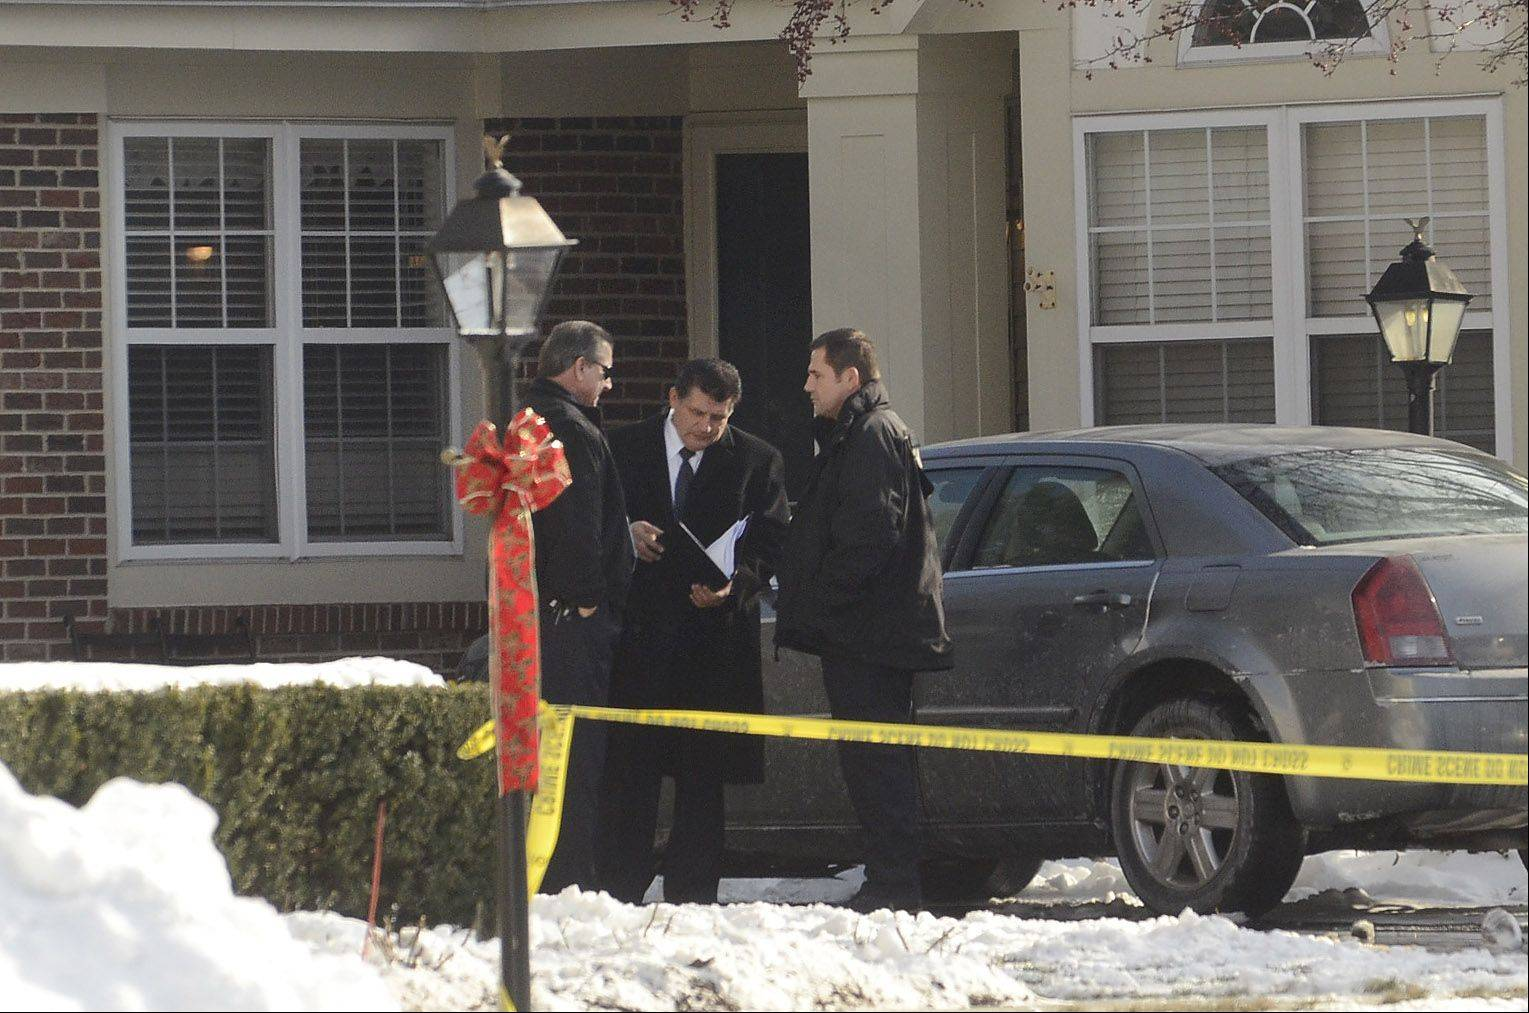 Police Friday continue to investigate the Thursday night shooting scene on the 1900 block of Windham Court, in the background, in Arlington Heights.